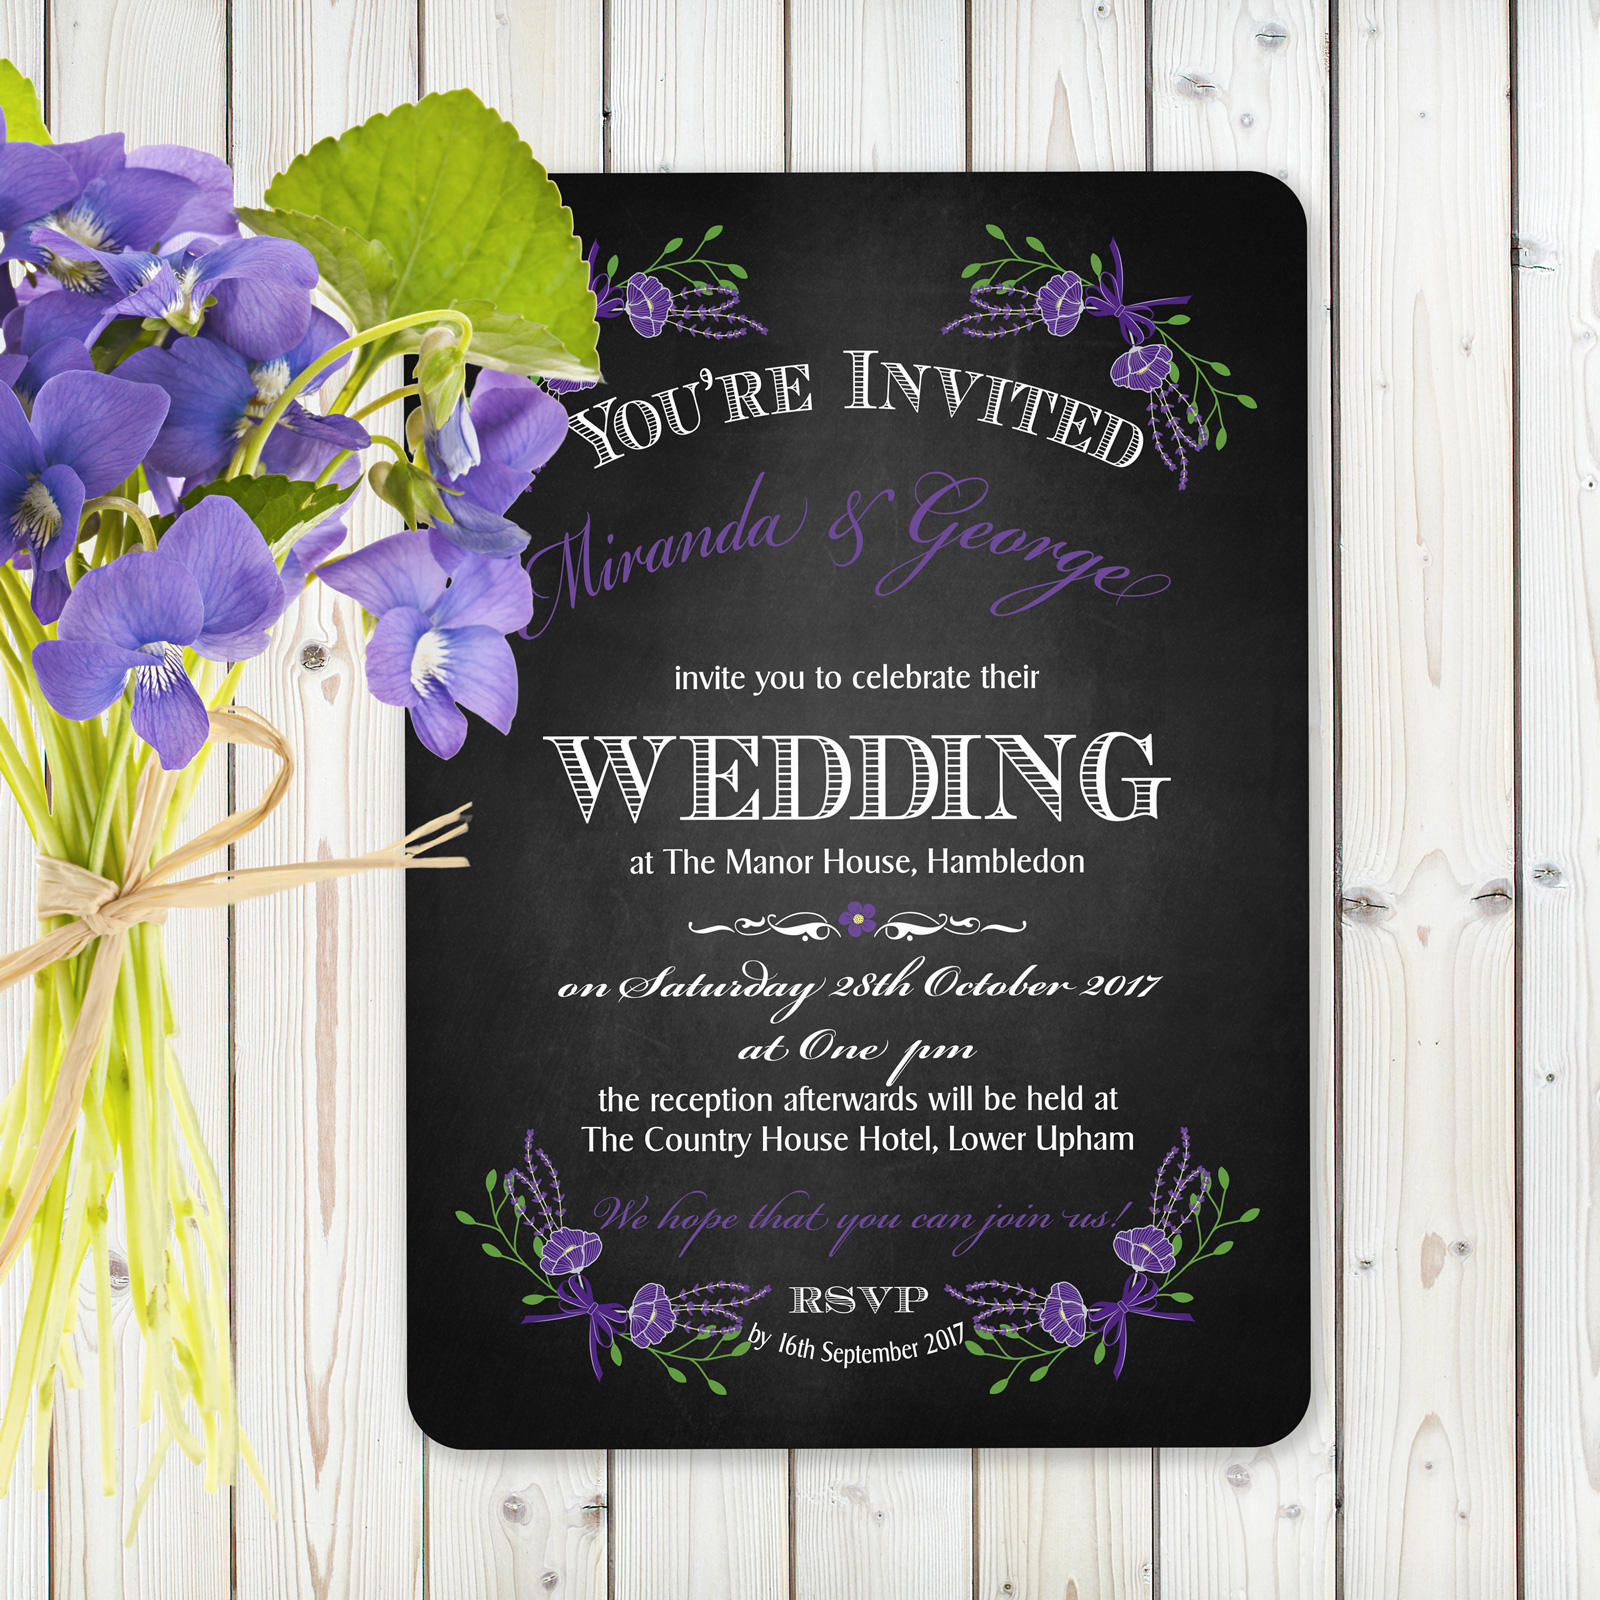 Floral Fantasy Purple on Chalkboard - Day Invitation